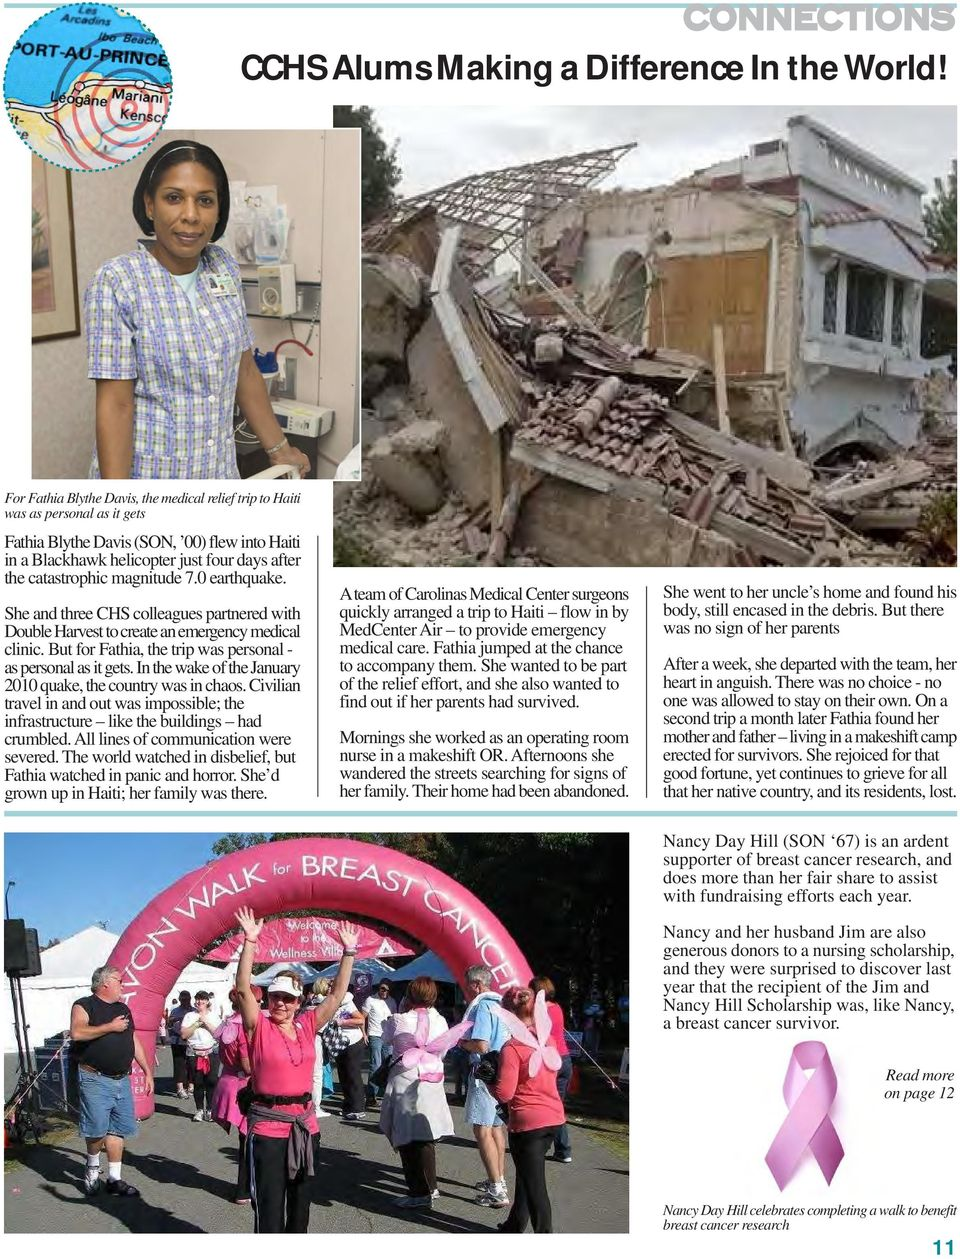 magnitude 7.0 earthquake. She and three CHS colleagues partnered with Double Harvest to create an emergency medical clinic. But for Fathia, the trip was personal - as personal as it gets.